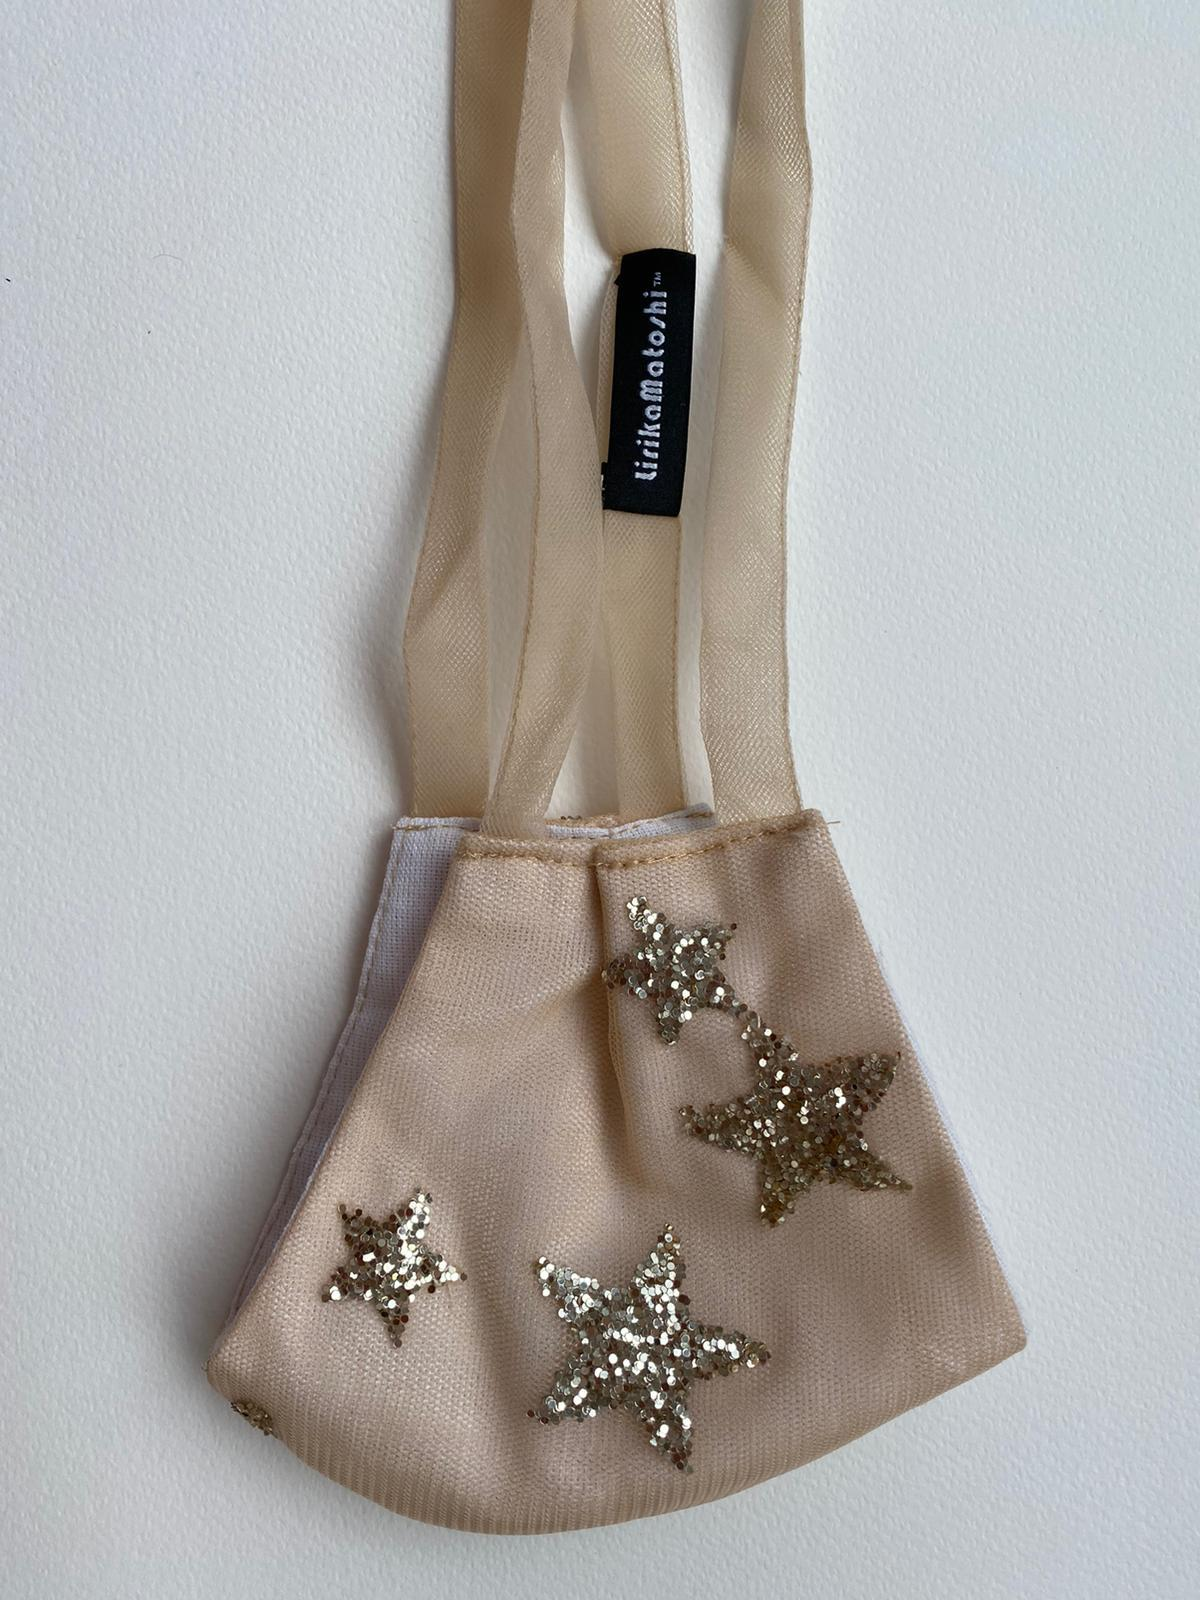 tan mask with glitter star patches